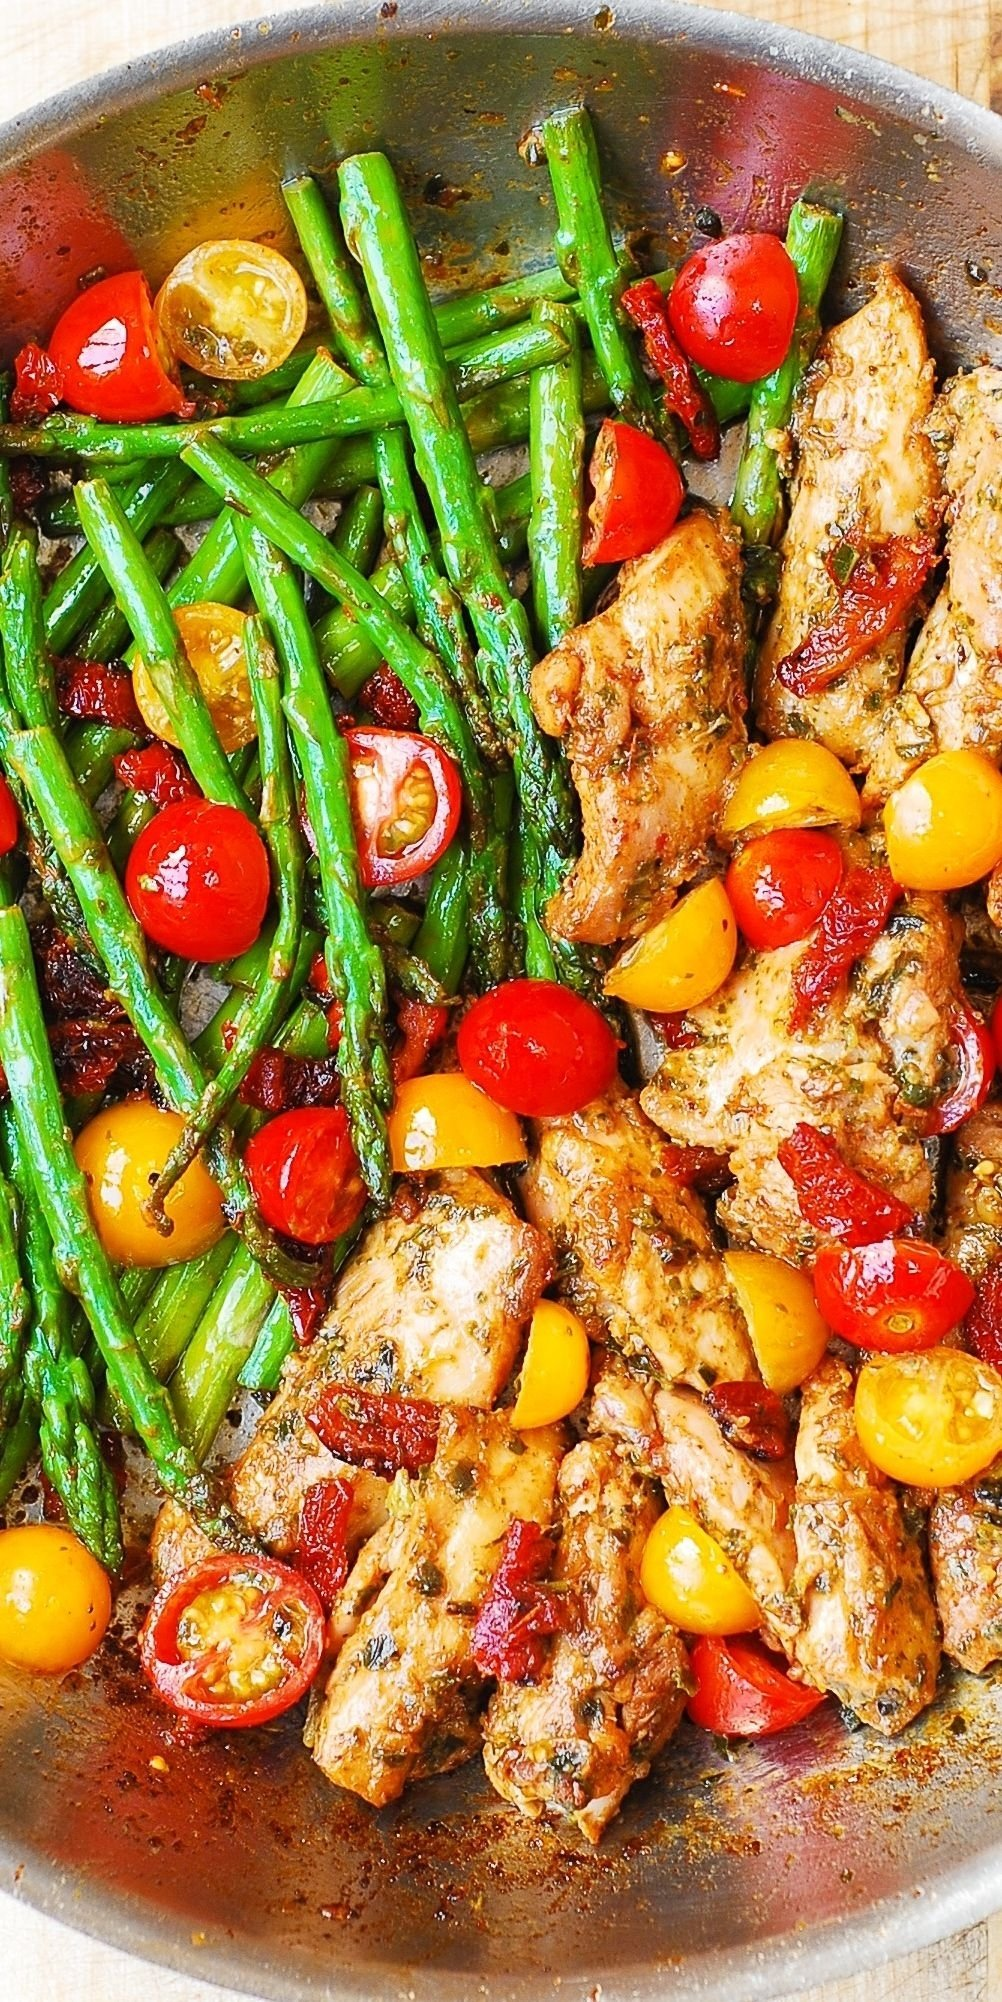 10 Fantastic Easy And Healthy Dinner Ideas quick and simple healthy dinner for any day healthy foods